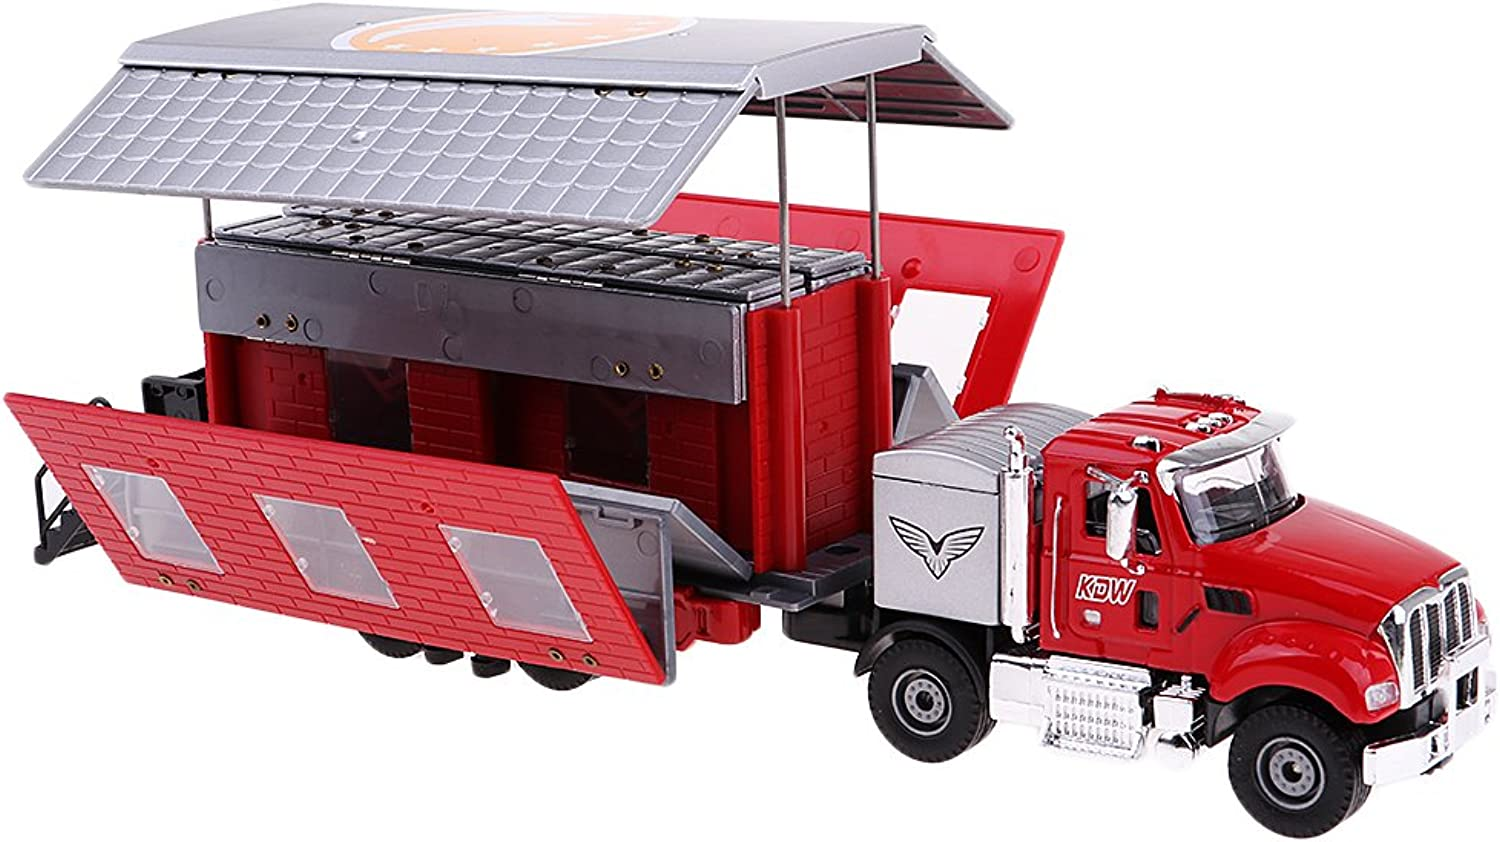 D DOLITY 1 50 Motorhome Camper Model Double Layers Vehicle for Model Collection Hobby Red